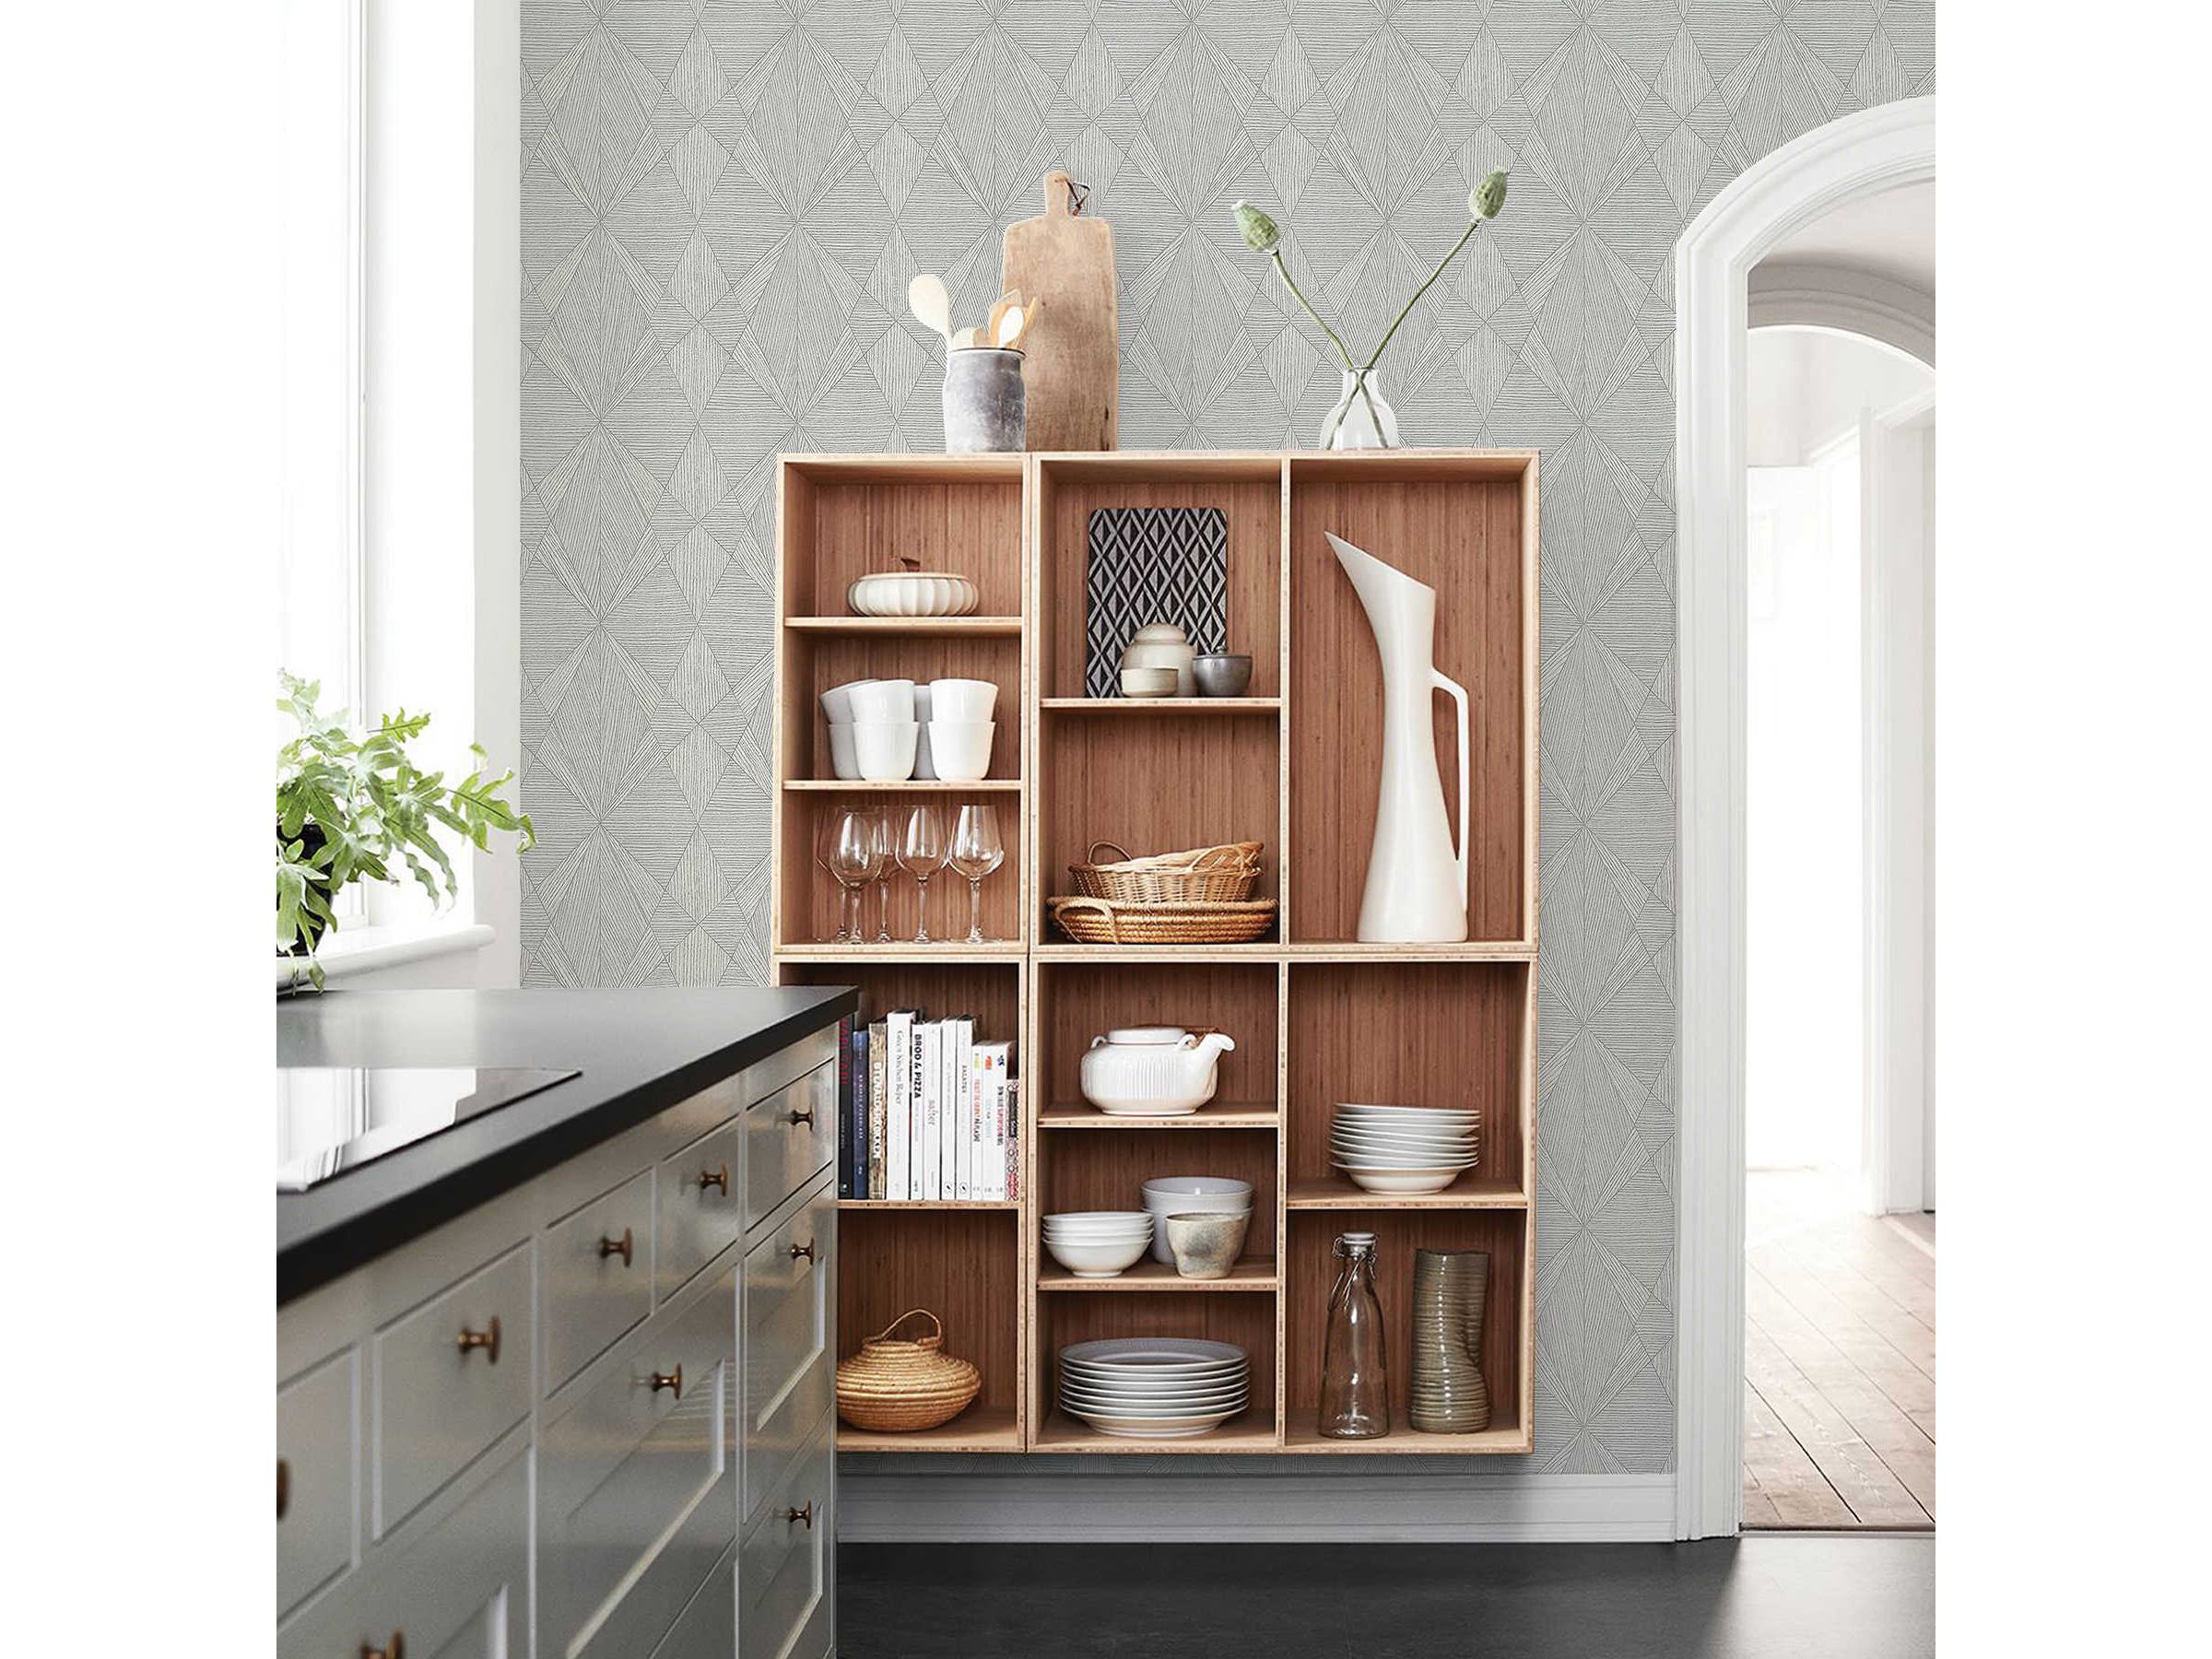 Brewster Home Fashions A Street Prints Intrinsic Silver Geometric Wood Wallpaper Sold In 2 Bhf290825333